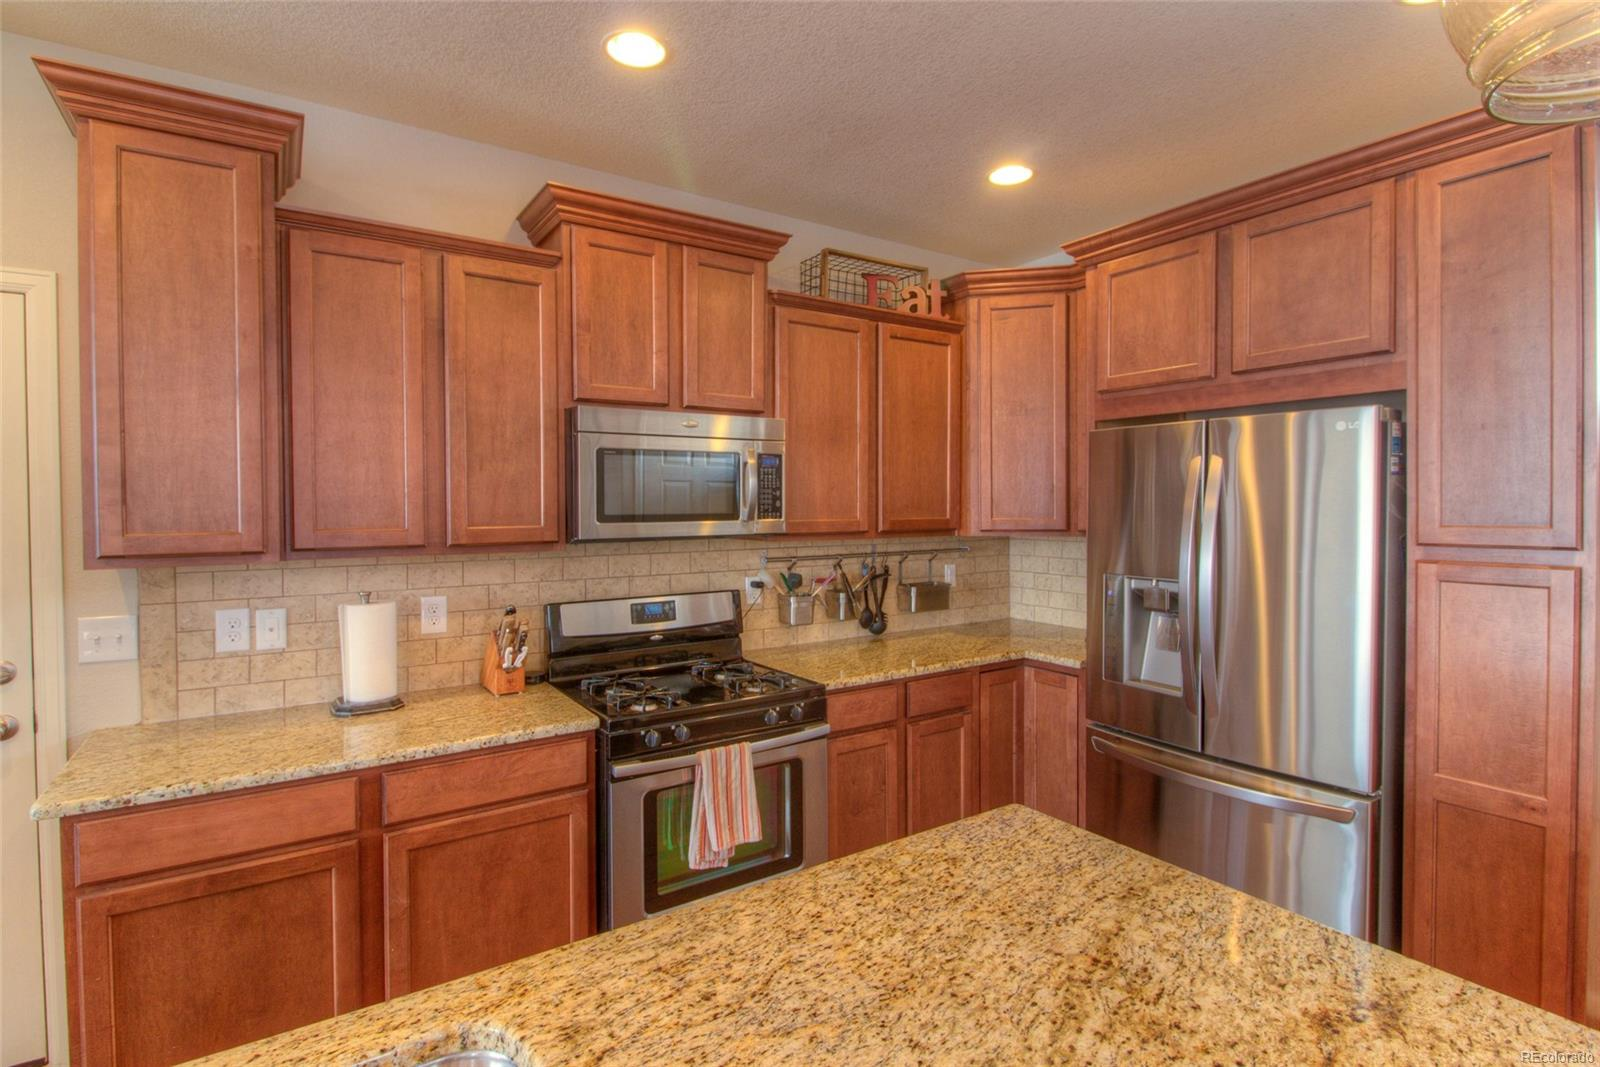 Granite countertops, stainless steel appliances including gas stove top